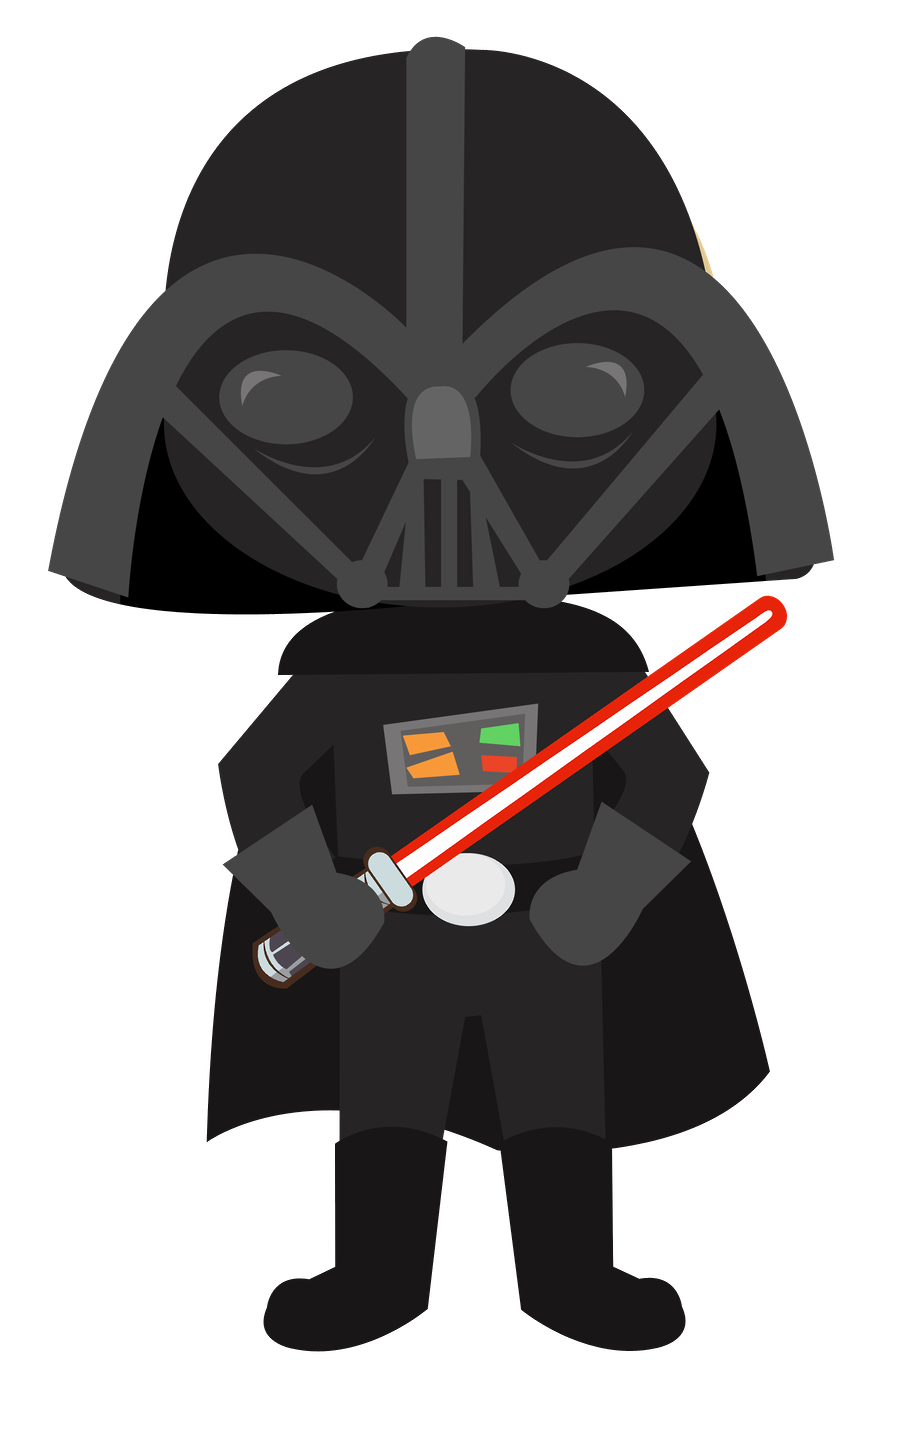 Star wars clipart luke skywalker vector free library Star Wars - Minus | Felt Board Images | Pinterest | Star, Darth ... vector free library